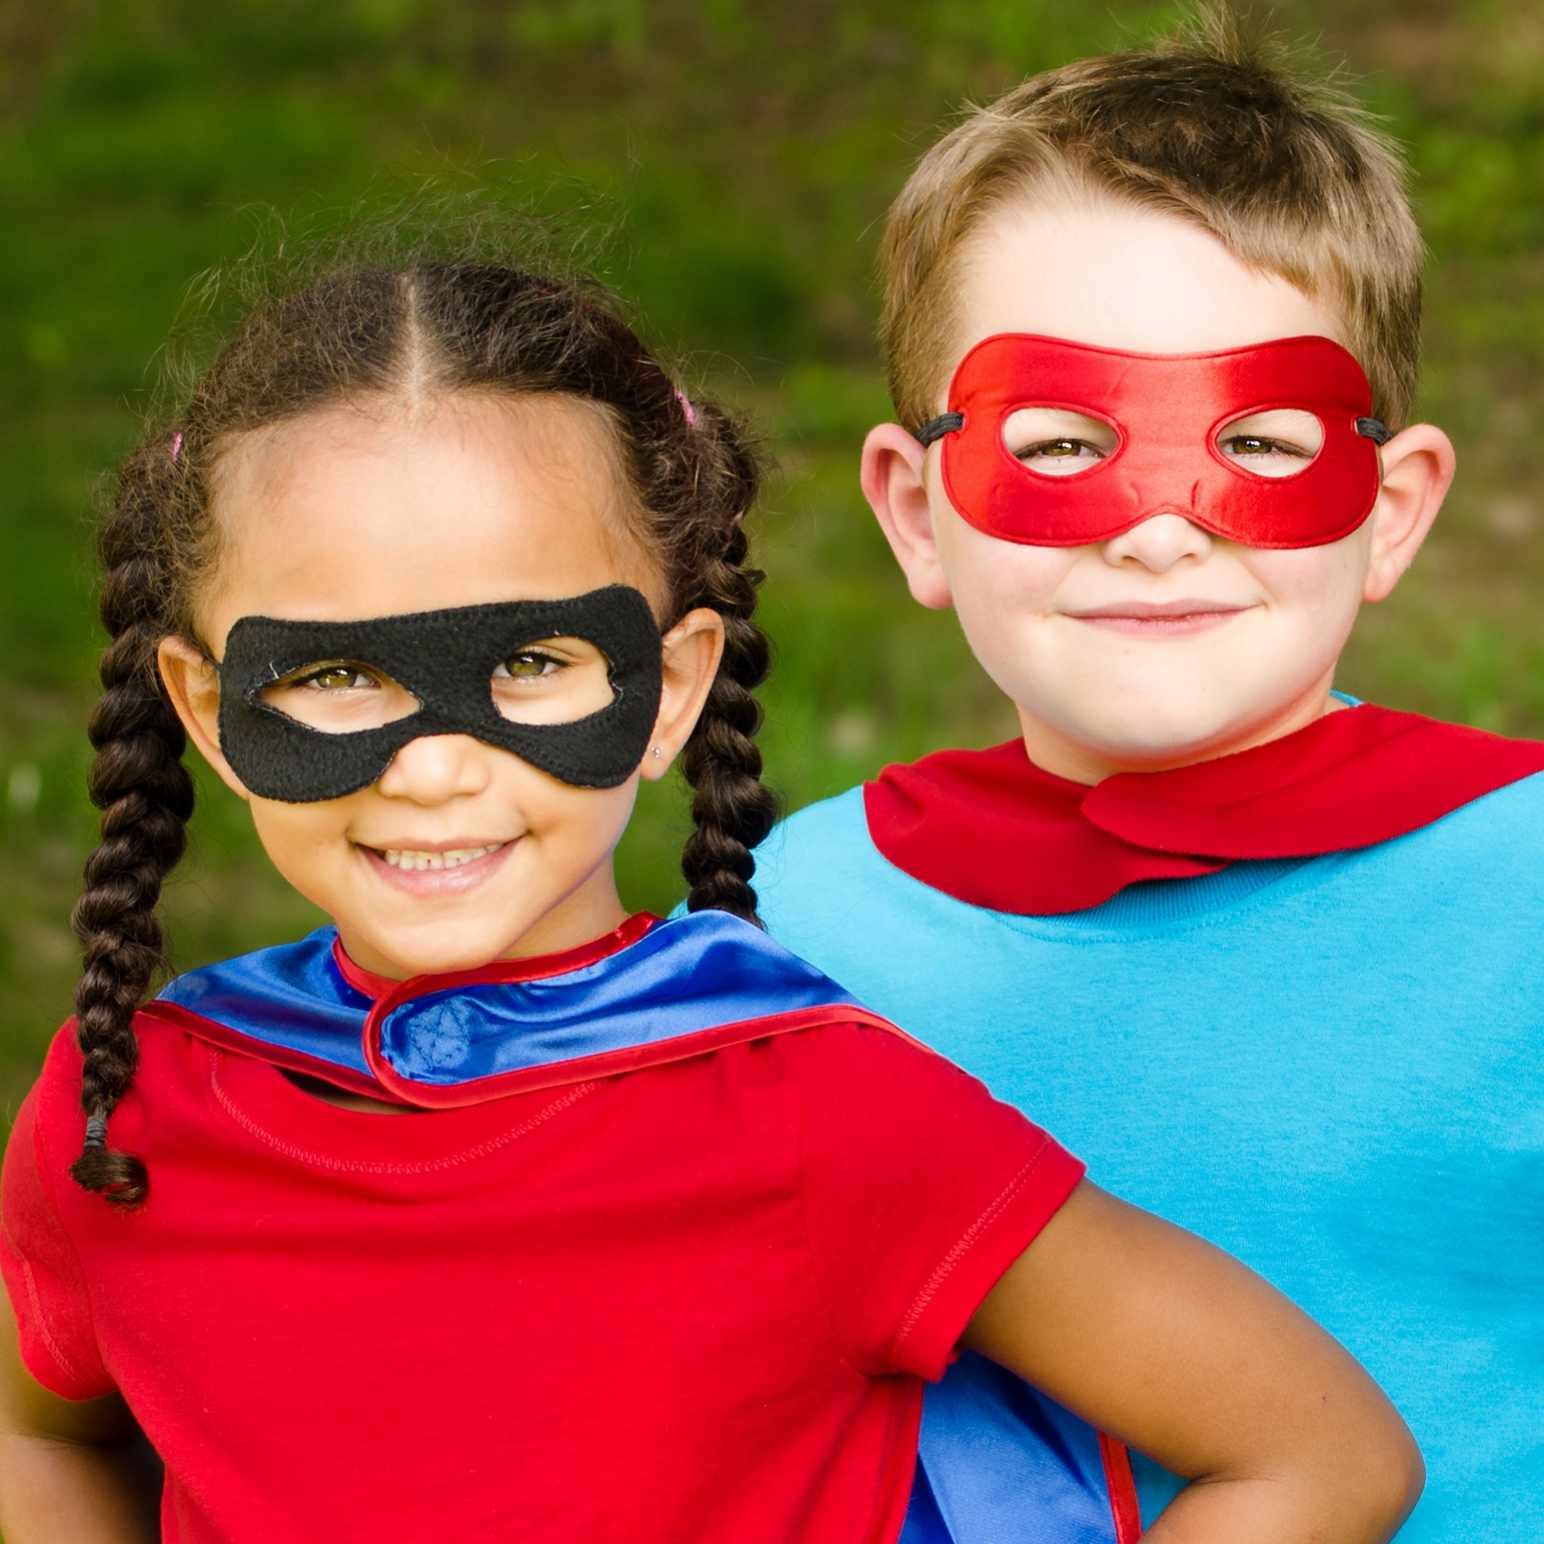 a little girl and a little boy dressed up in costumes as superheroes with masks